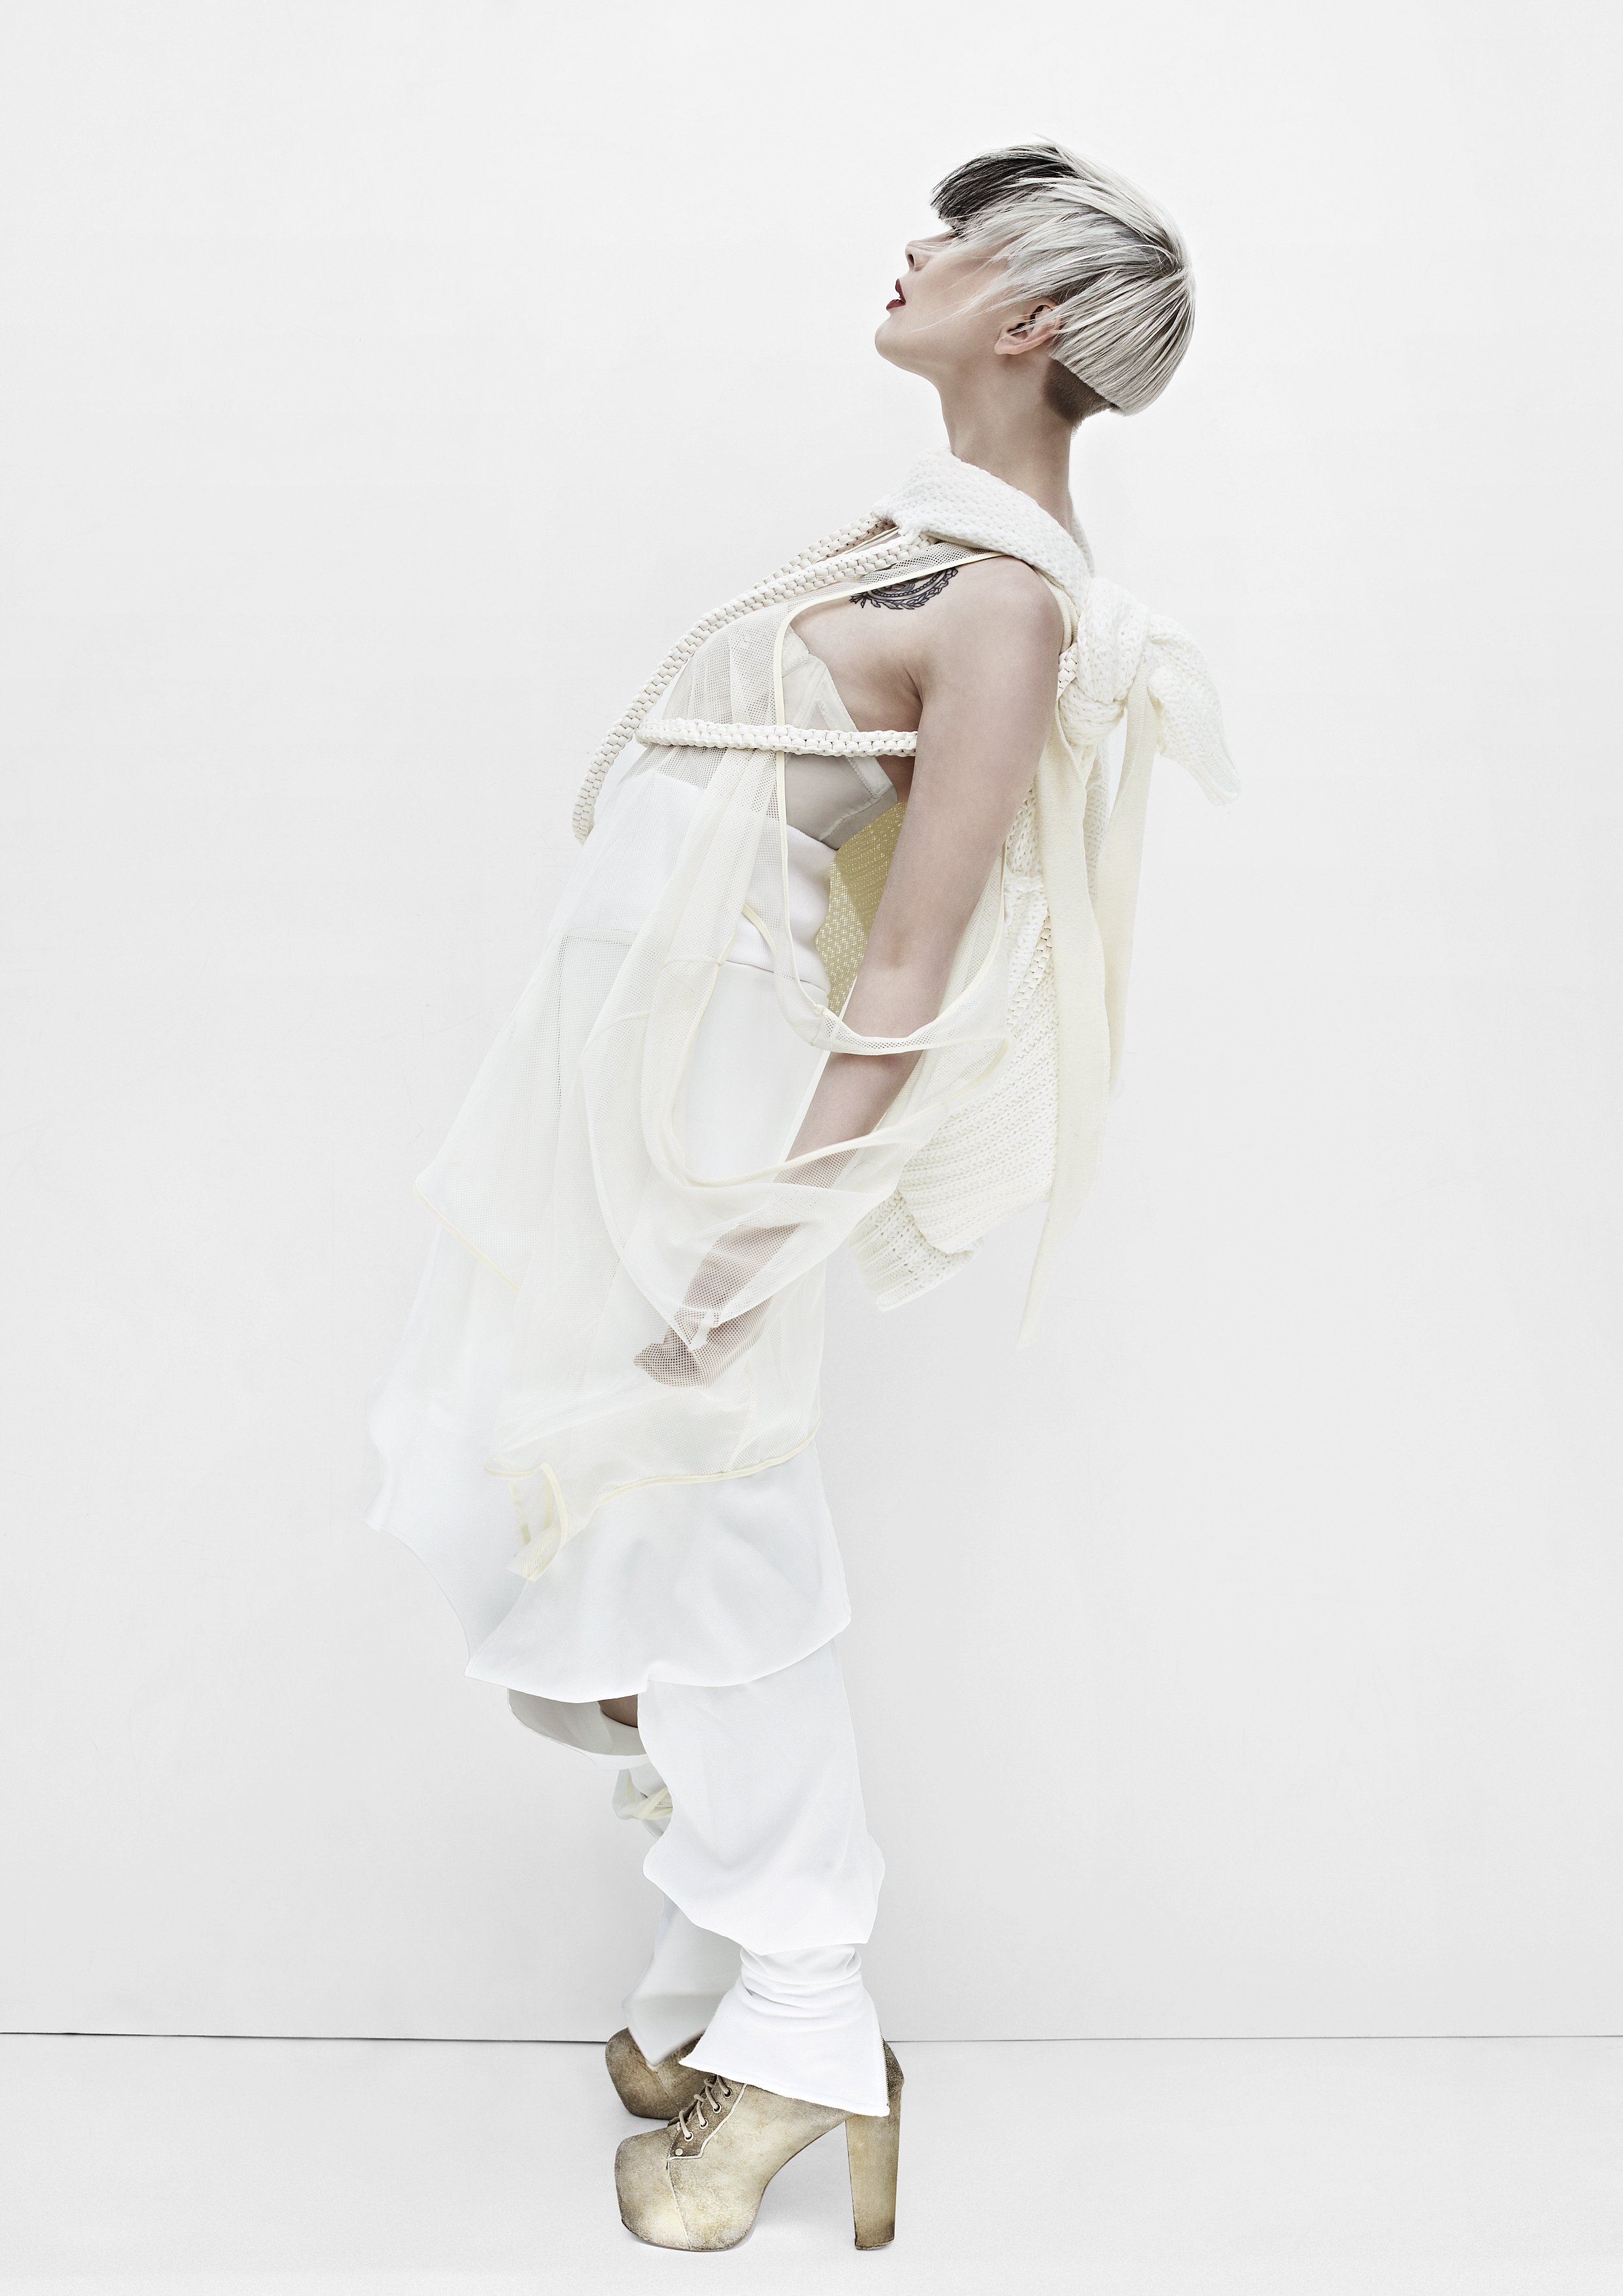 Sonja Jocic SS14 ''DREAM AWAKE''